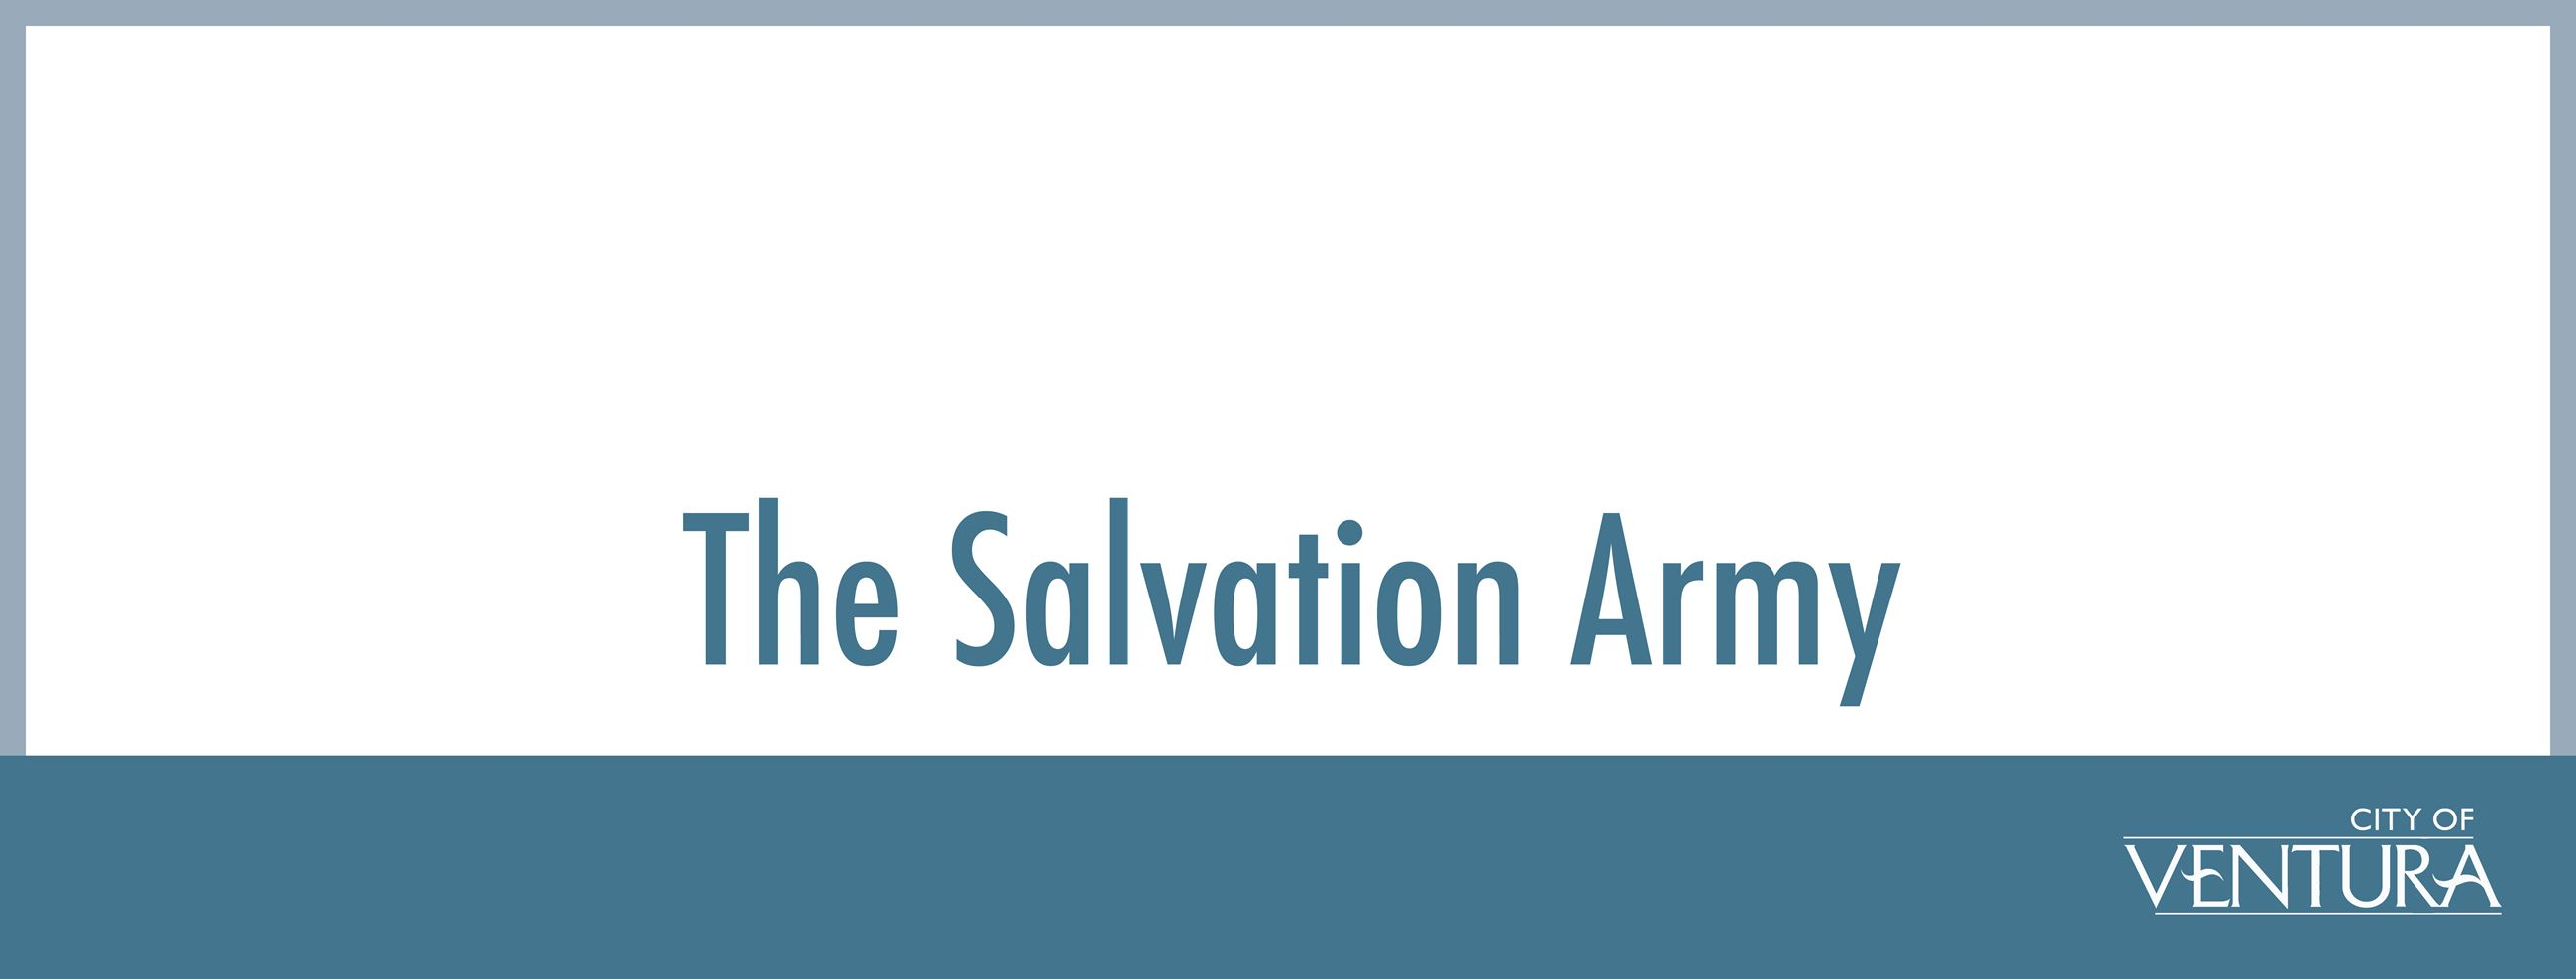 The Salvation Army Health